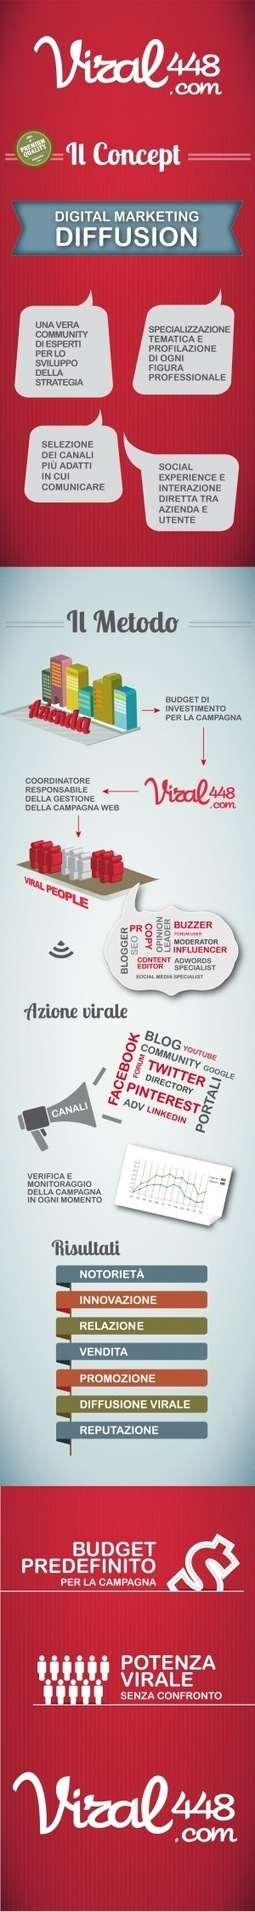 Viral448, la community dei Social Media Addicted e non solo | Social Media (network, technology, blog, community, virtual reality, etc...) | Scoop.it